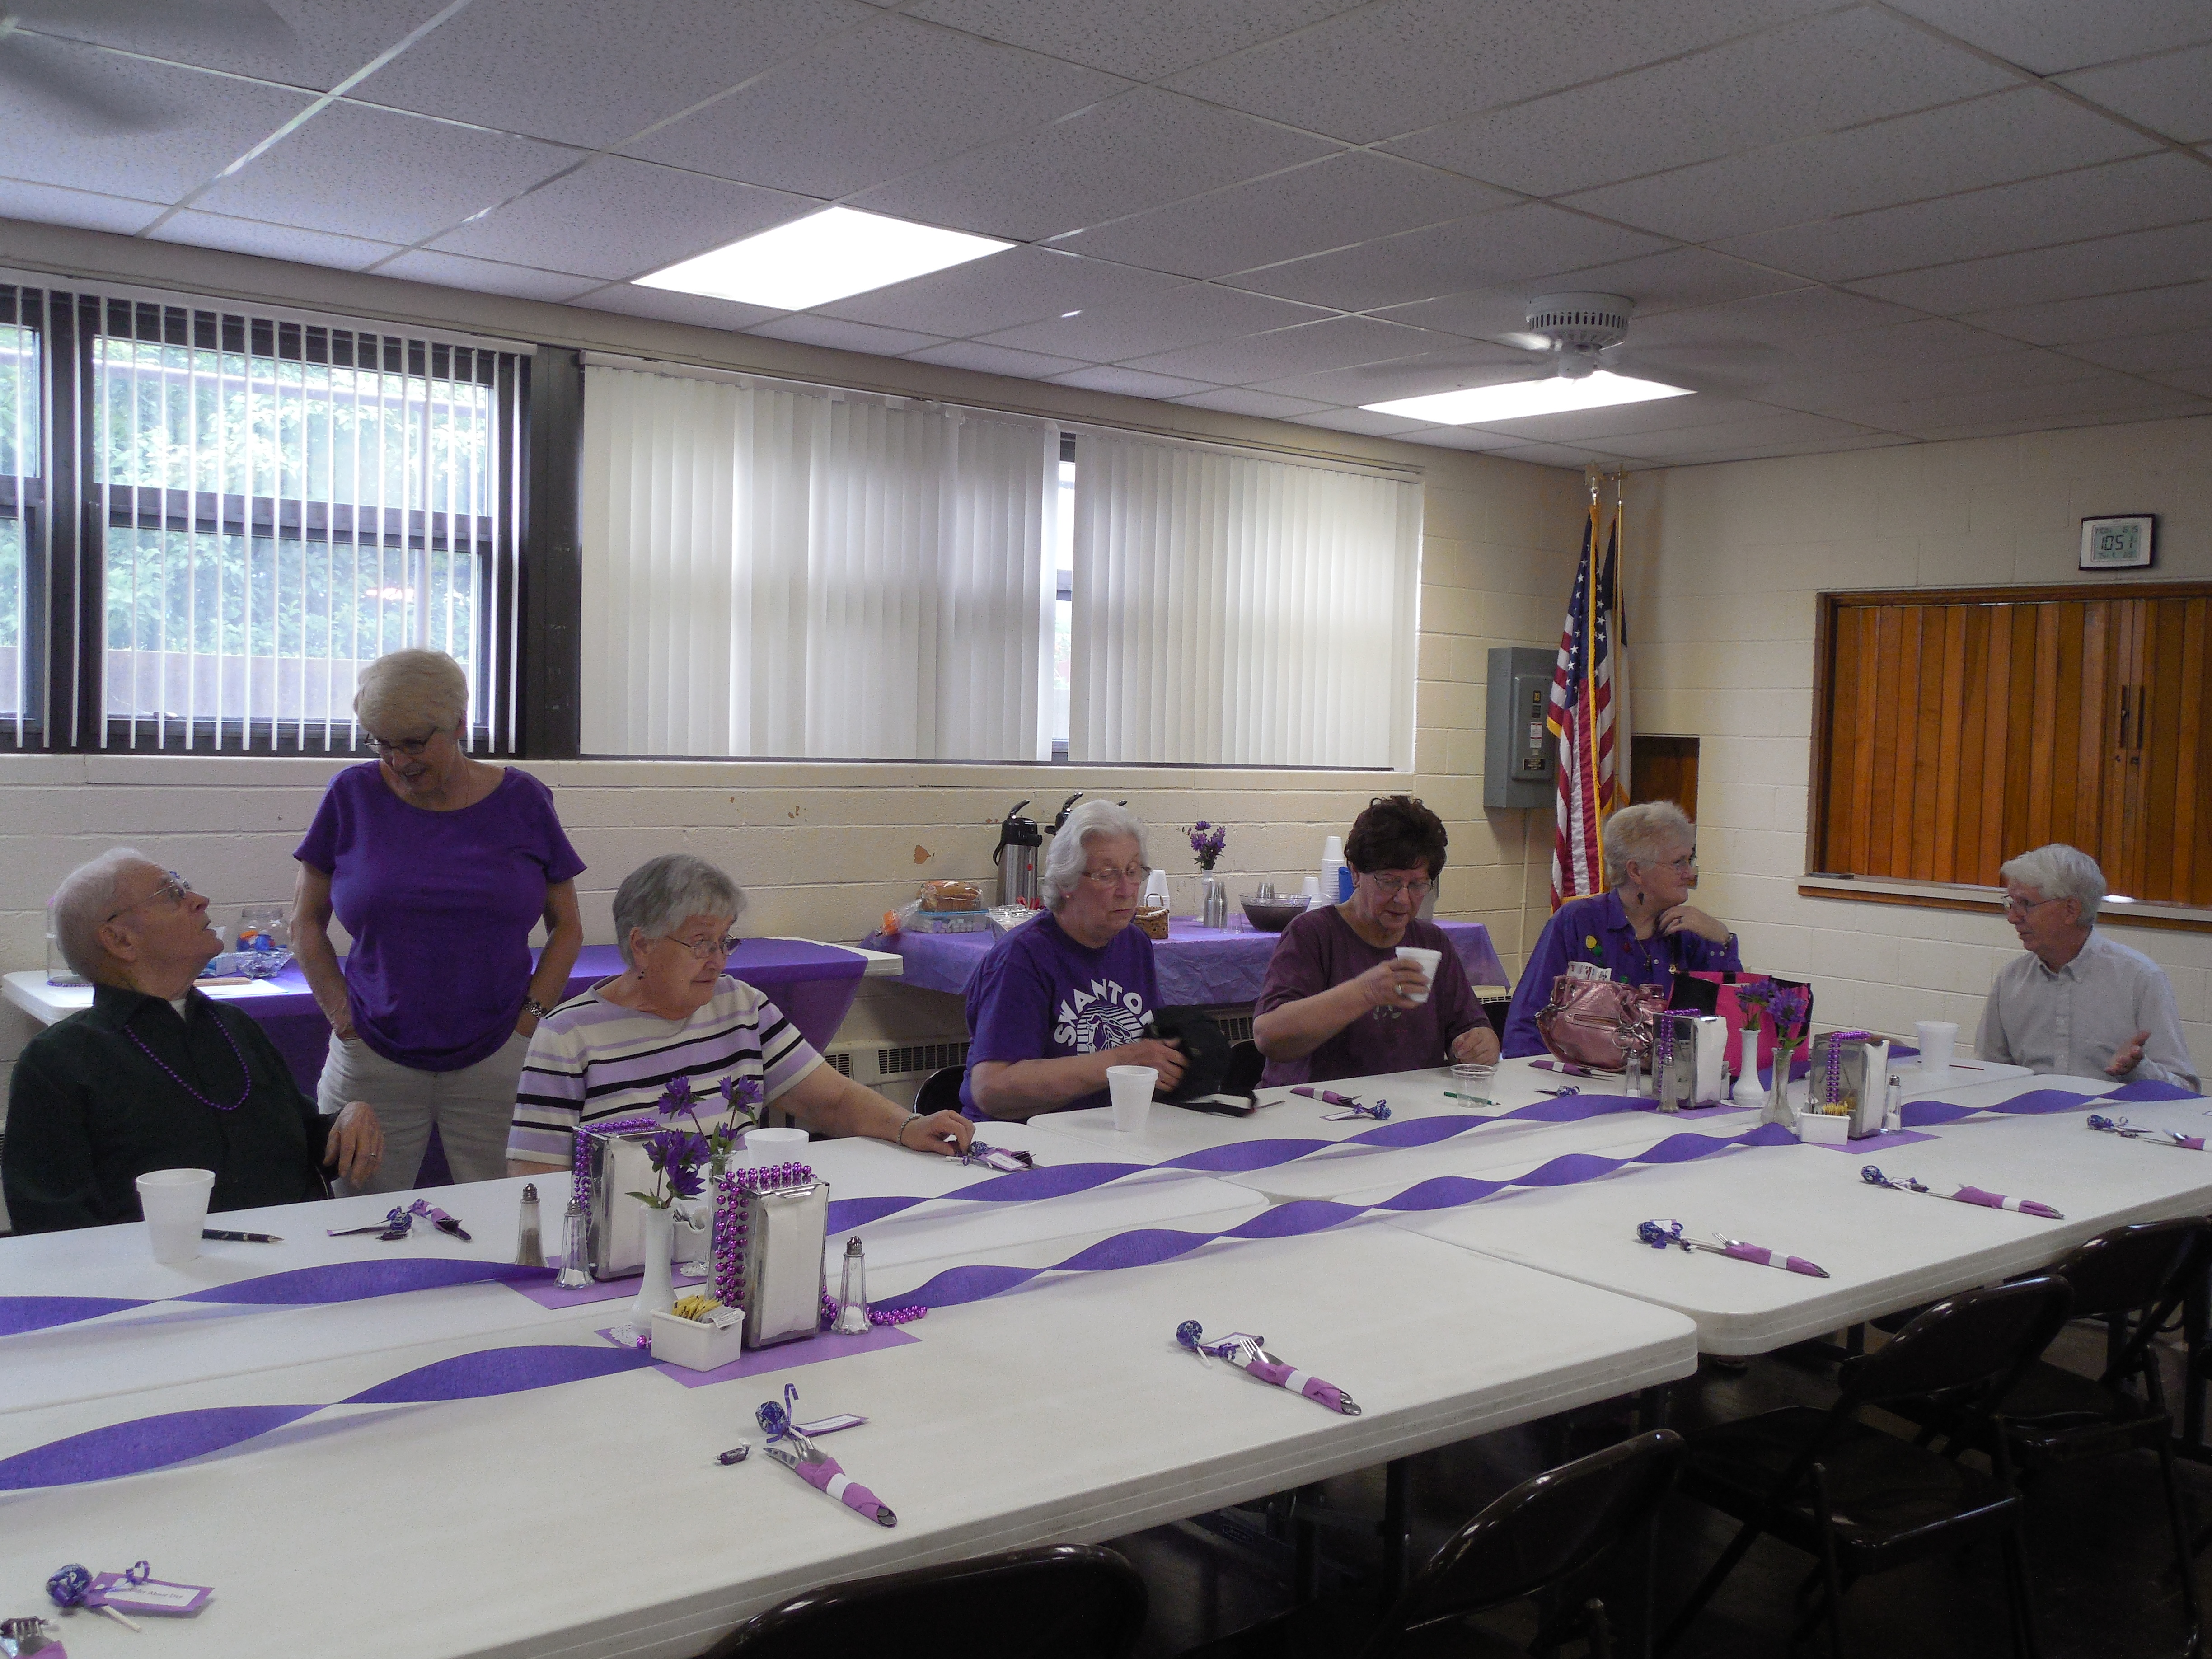 photo 2015 purple decorations for Elder Abuse Awar